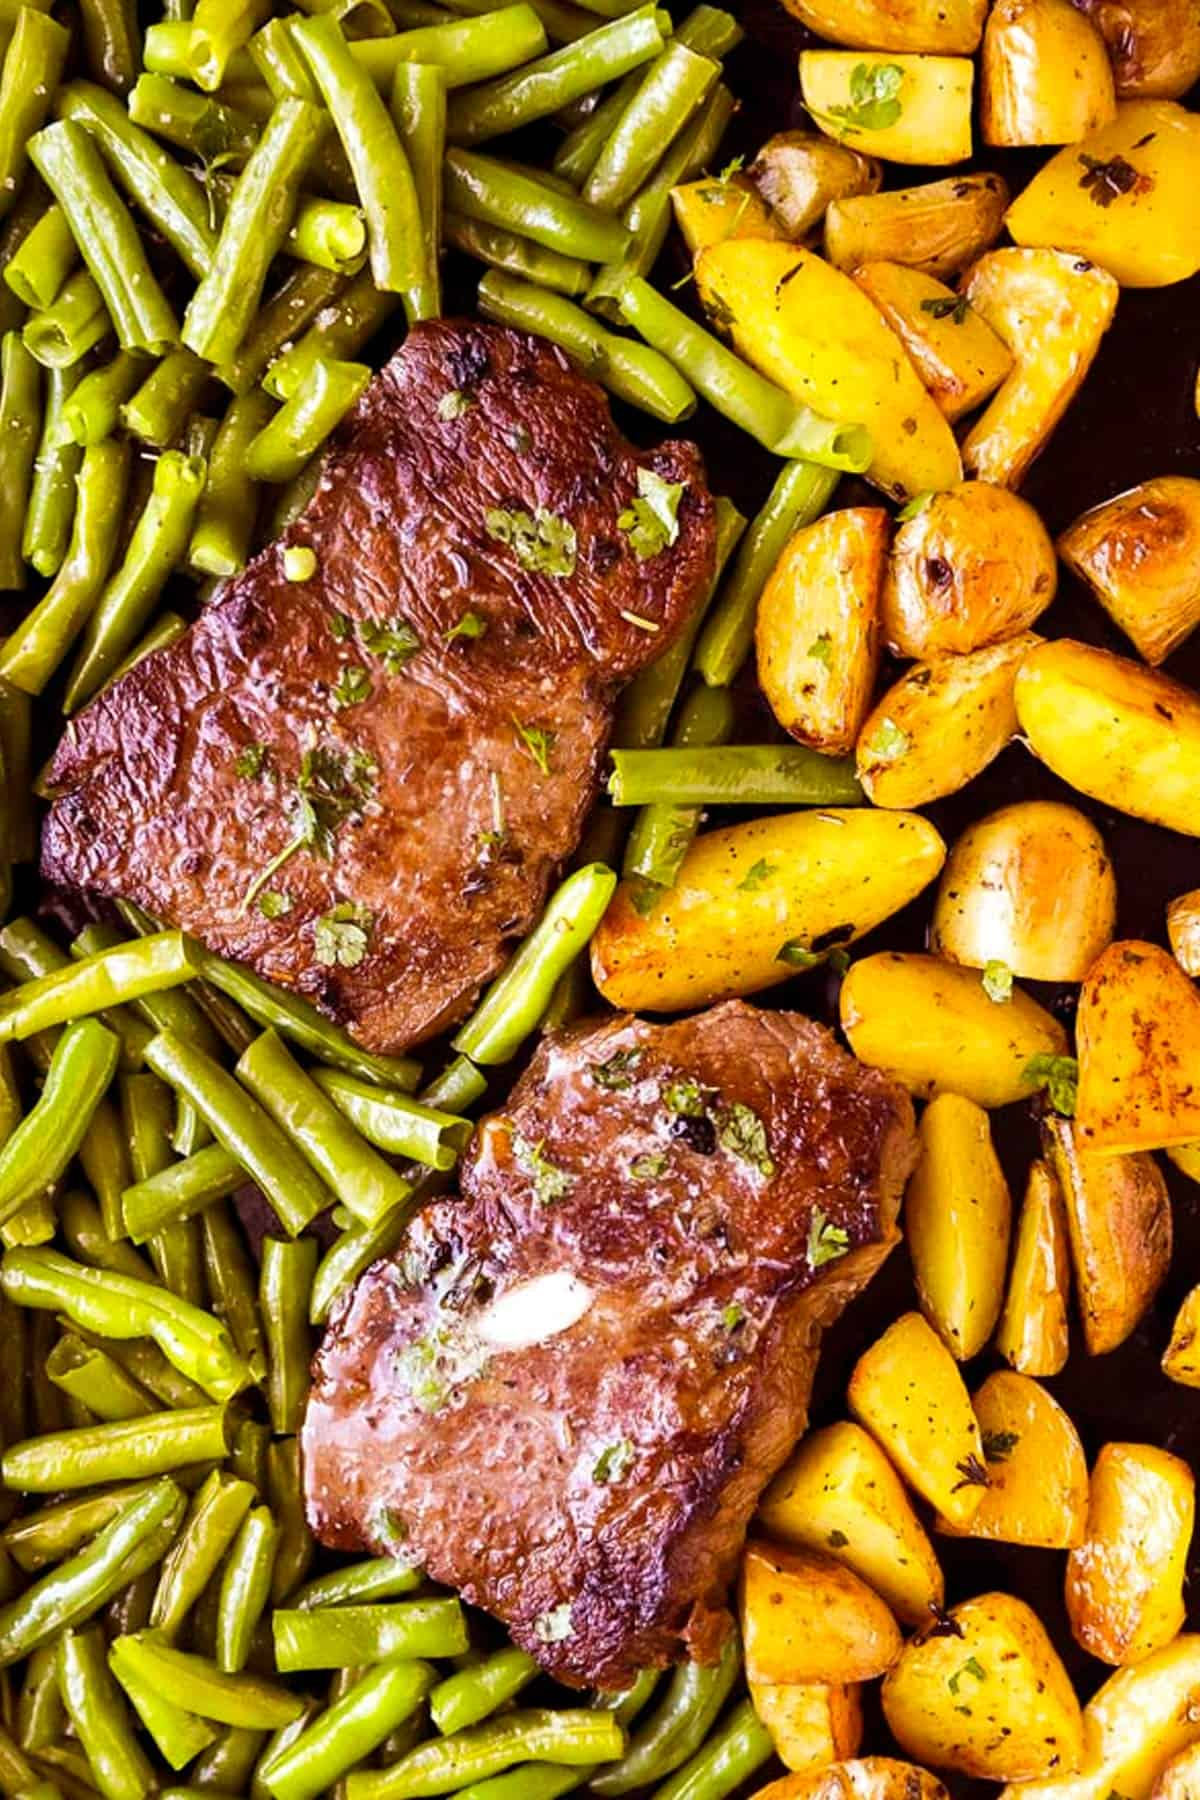 overhead view of potatoes, green beans and steak on sheet pan